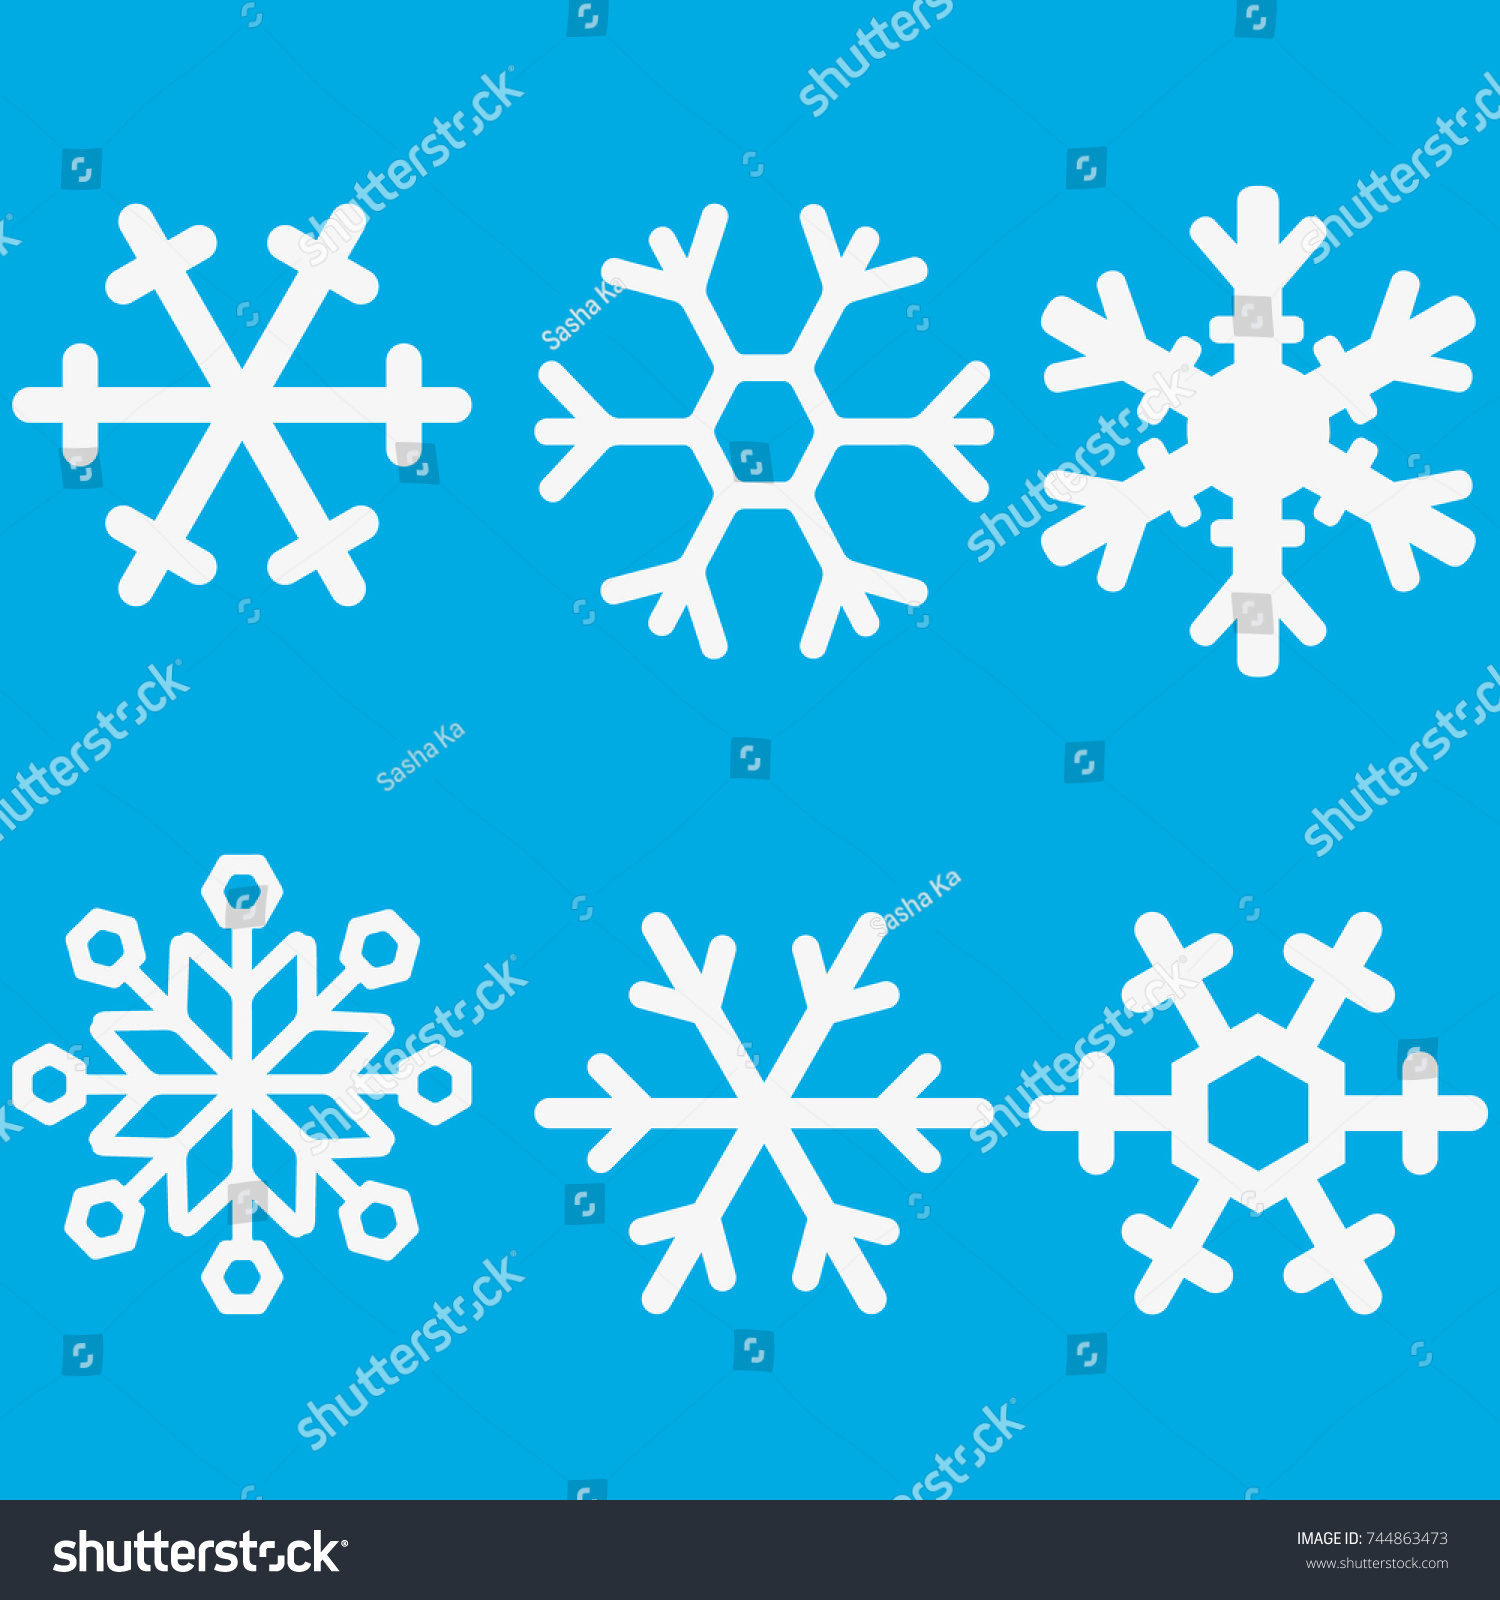 White snowflake background vector